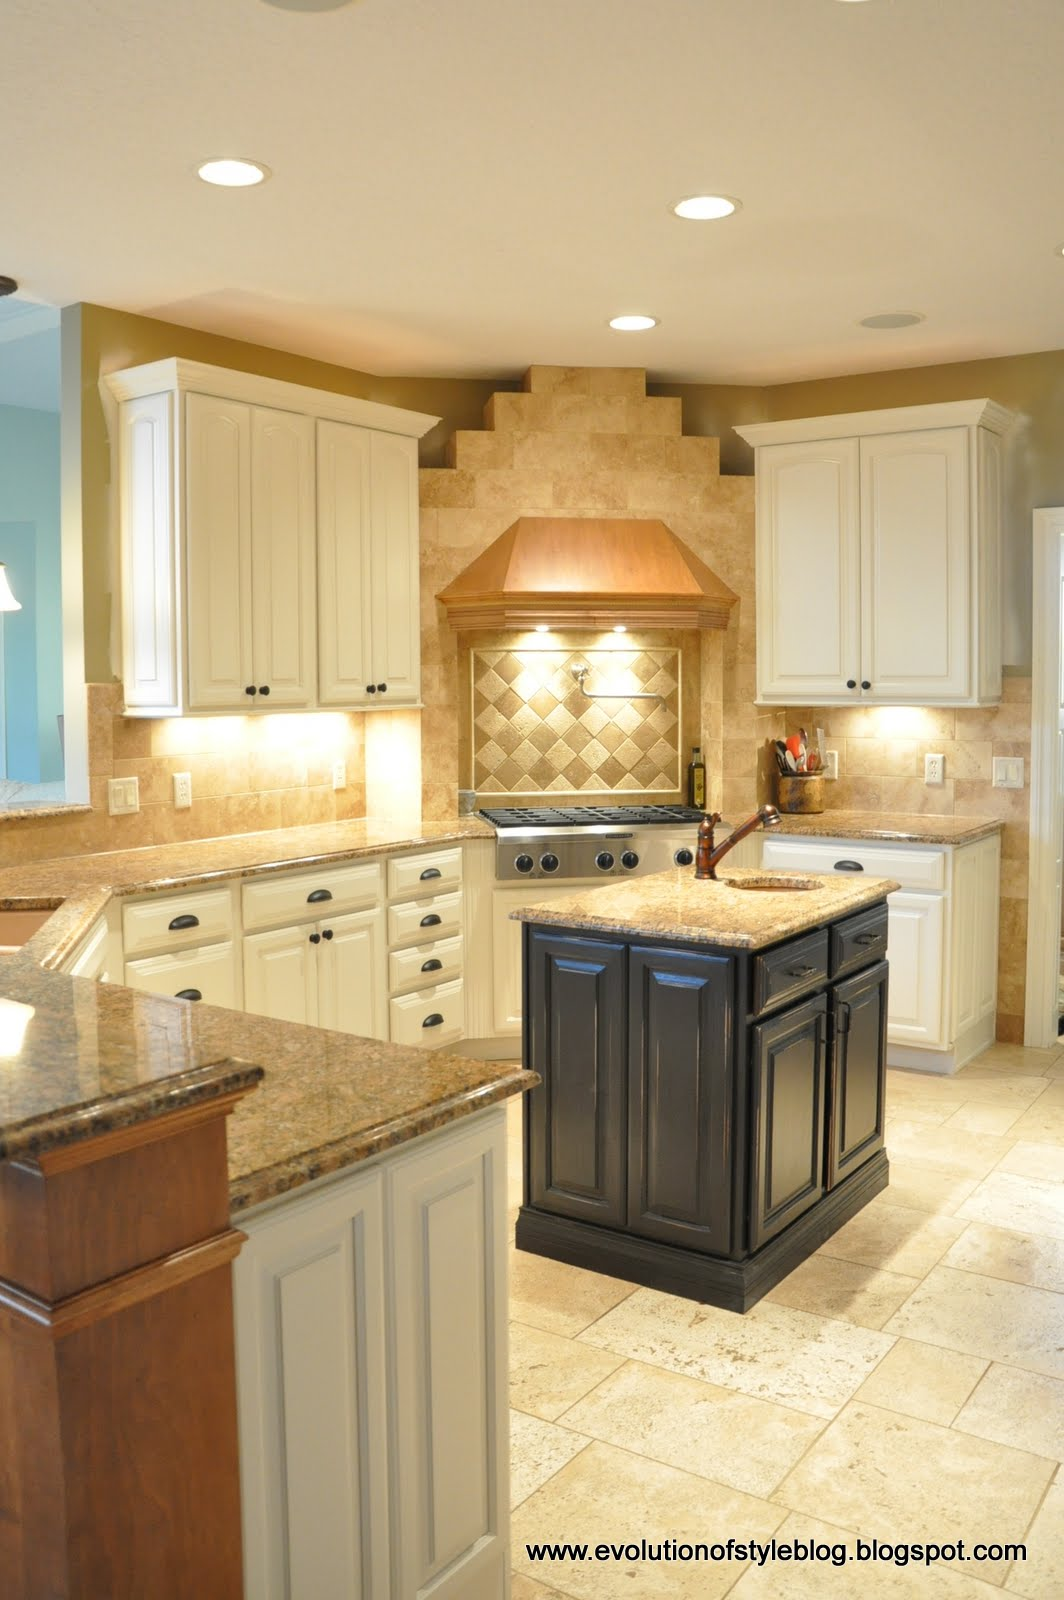 Kitchen Reveal! - Evolution of Style on my kitchen floor tile, my kitchen sink, my kitchen counter,